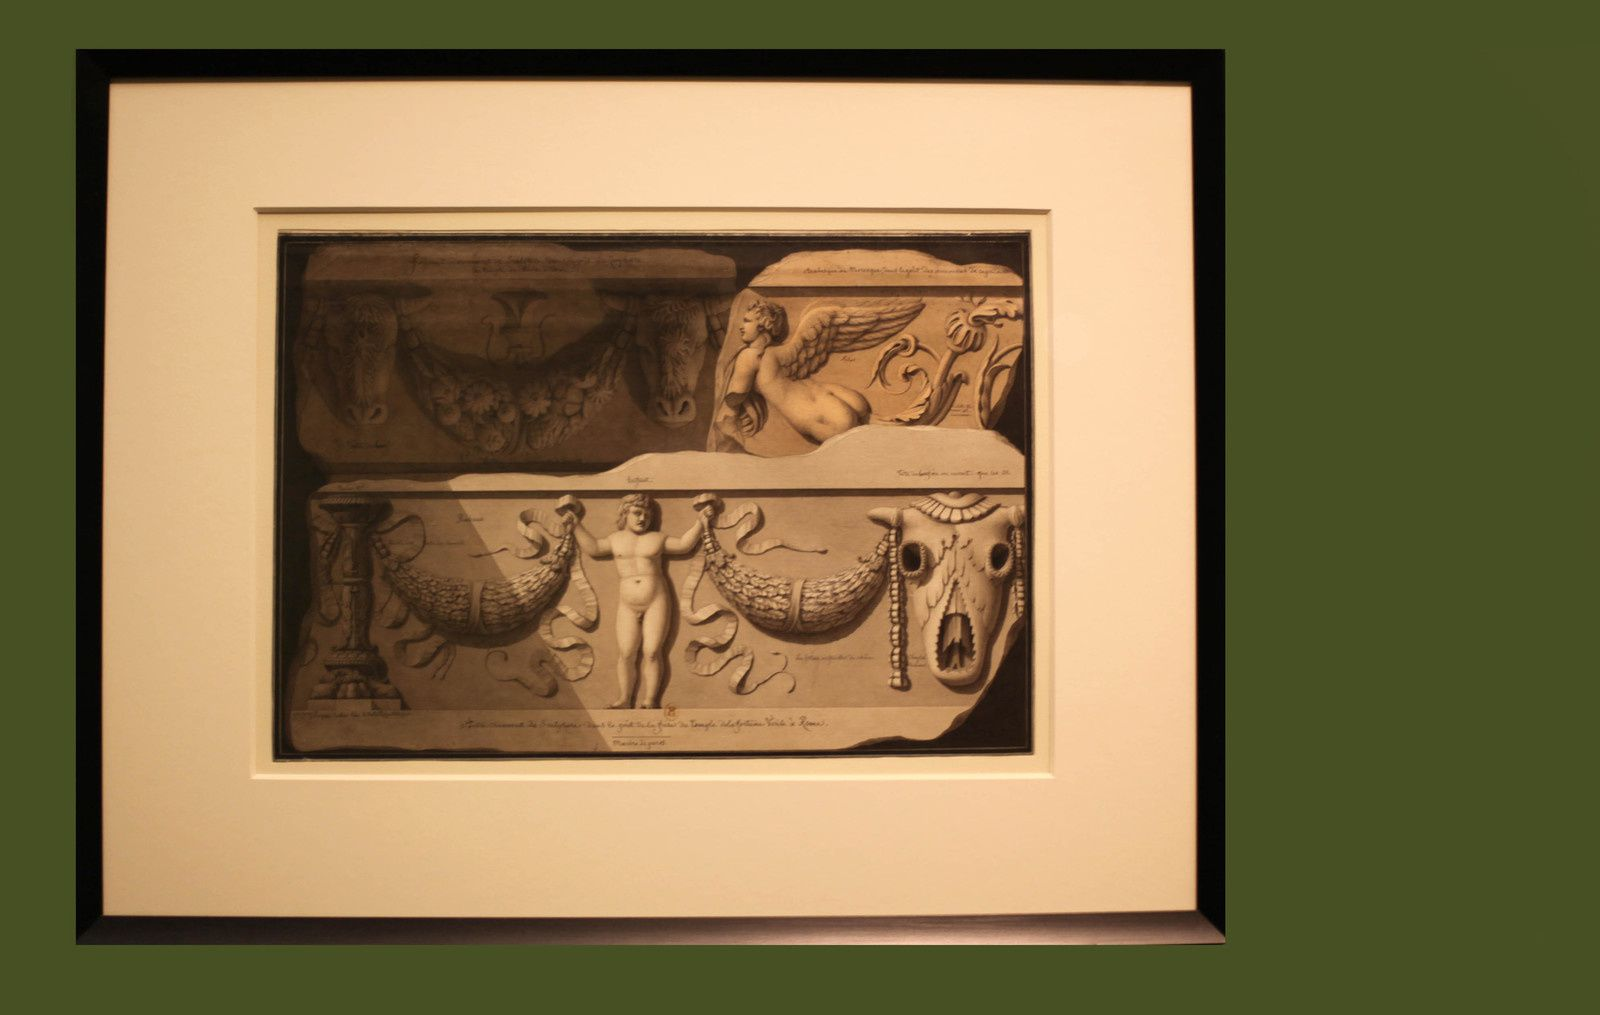 """Études d'ornement, motifs d'architecture antique"", 1794 - 1795  de Jean-Jacques LEQUEU - Courtesy le Petit Palais © Photo Éric Simon"